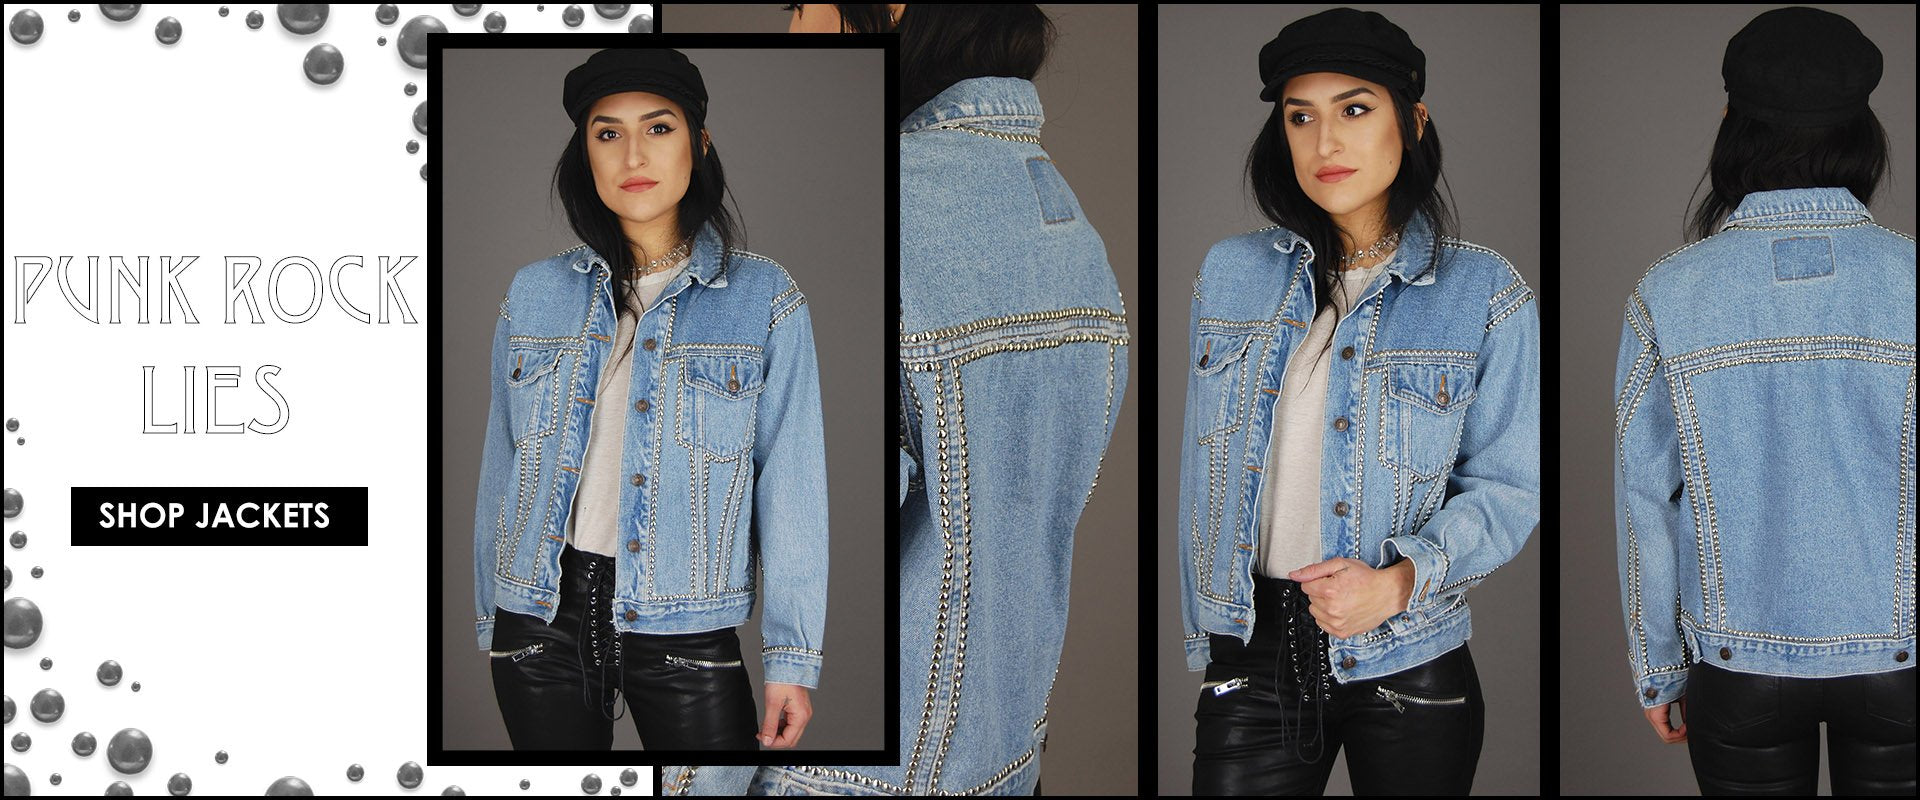 One More Chance Vintage - Badass Vintage & Studded Rock N Roll Clothing & Accessories